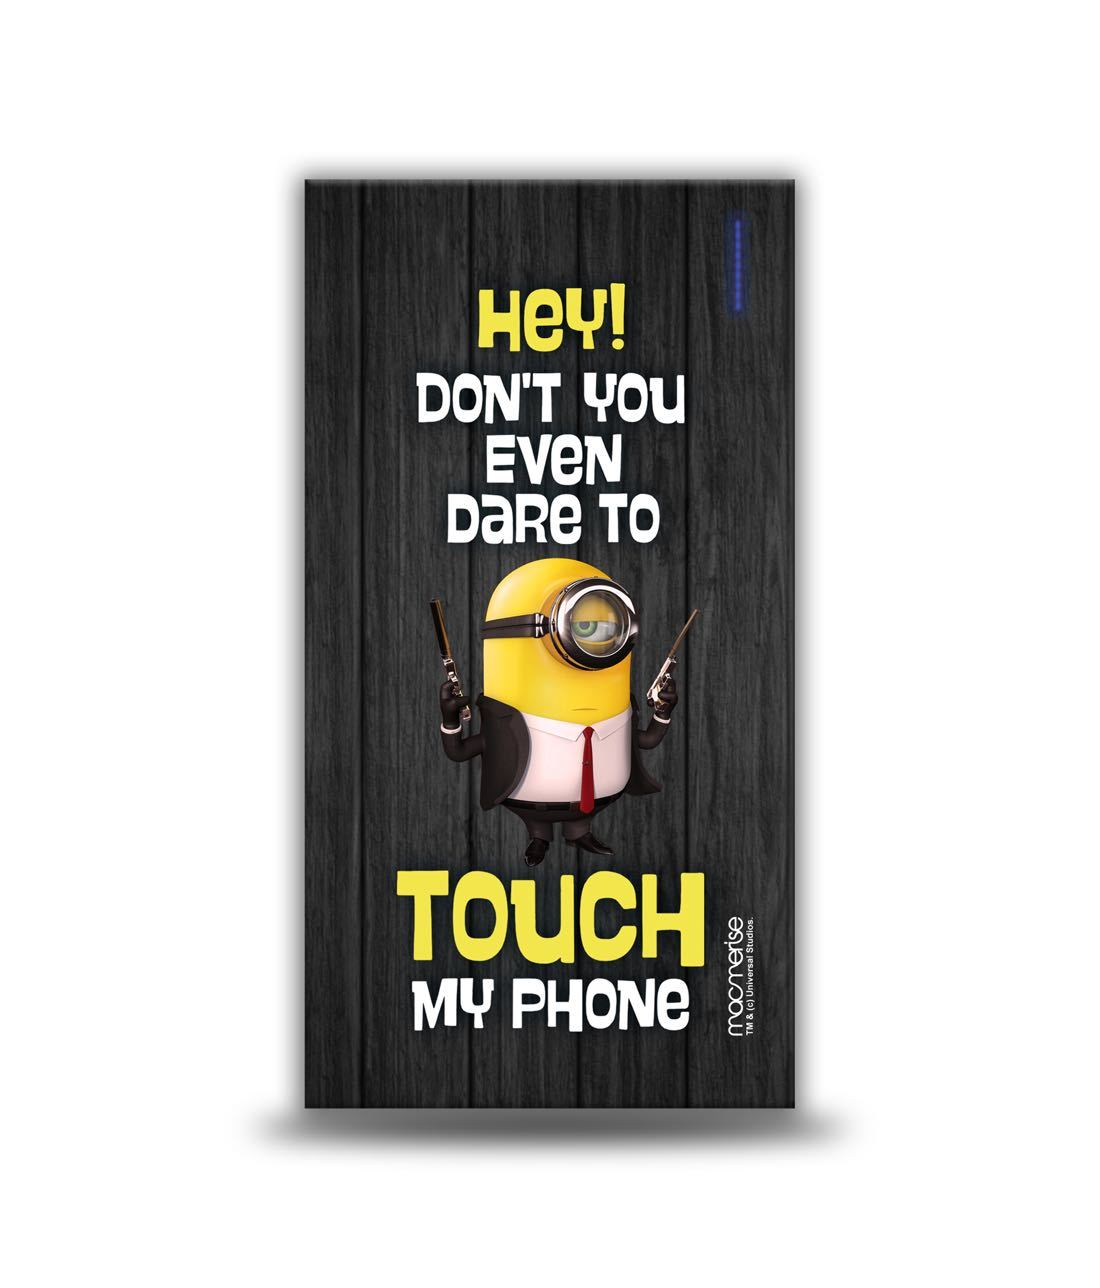 Minions Don't Touch My Phone 4000 MAH Power Bank by Macmerise